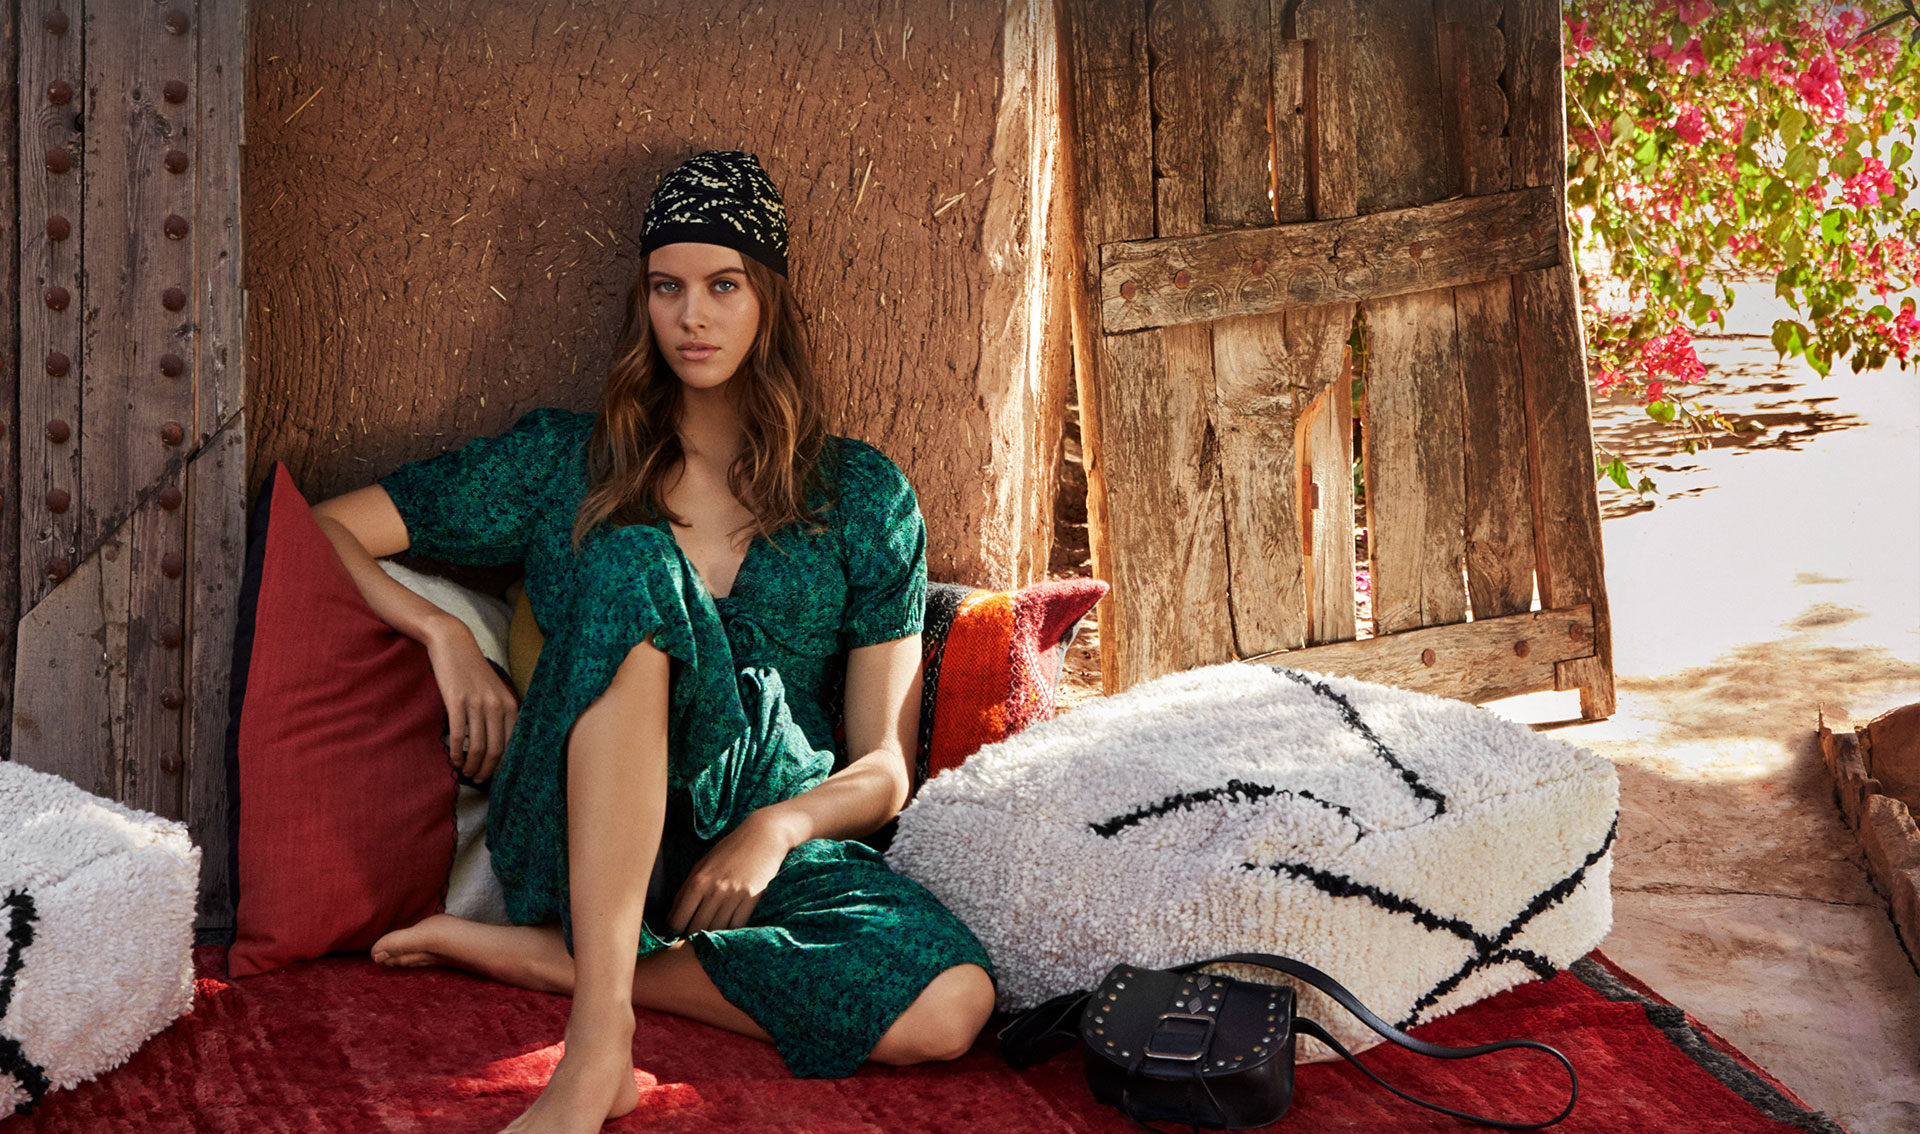 Woman sitting, in the heart of Marrakech city, wearing a green printed midi dress